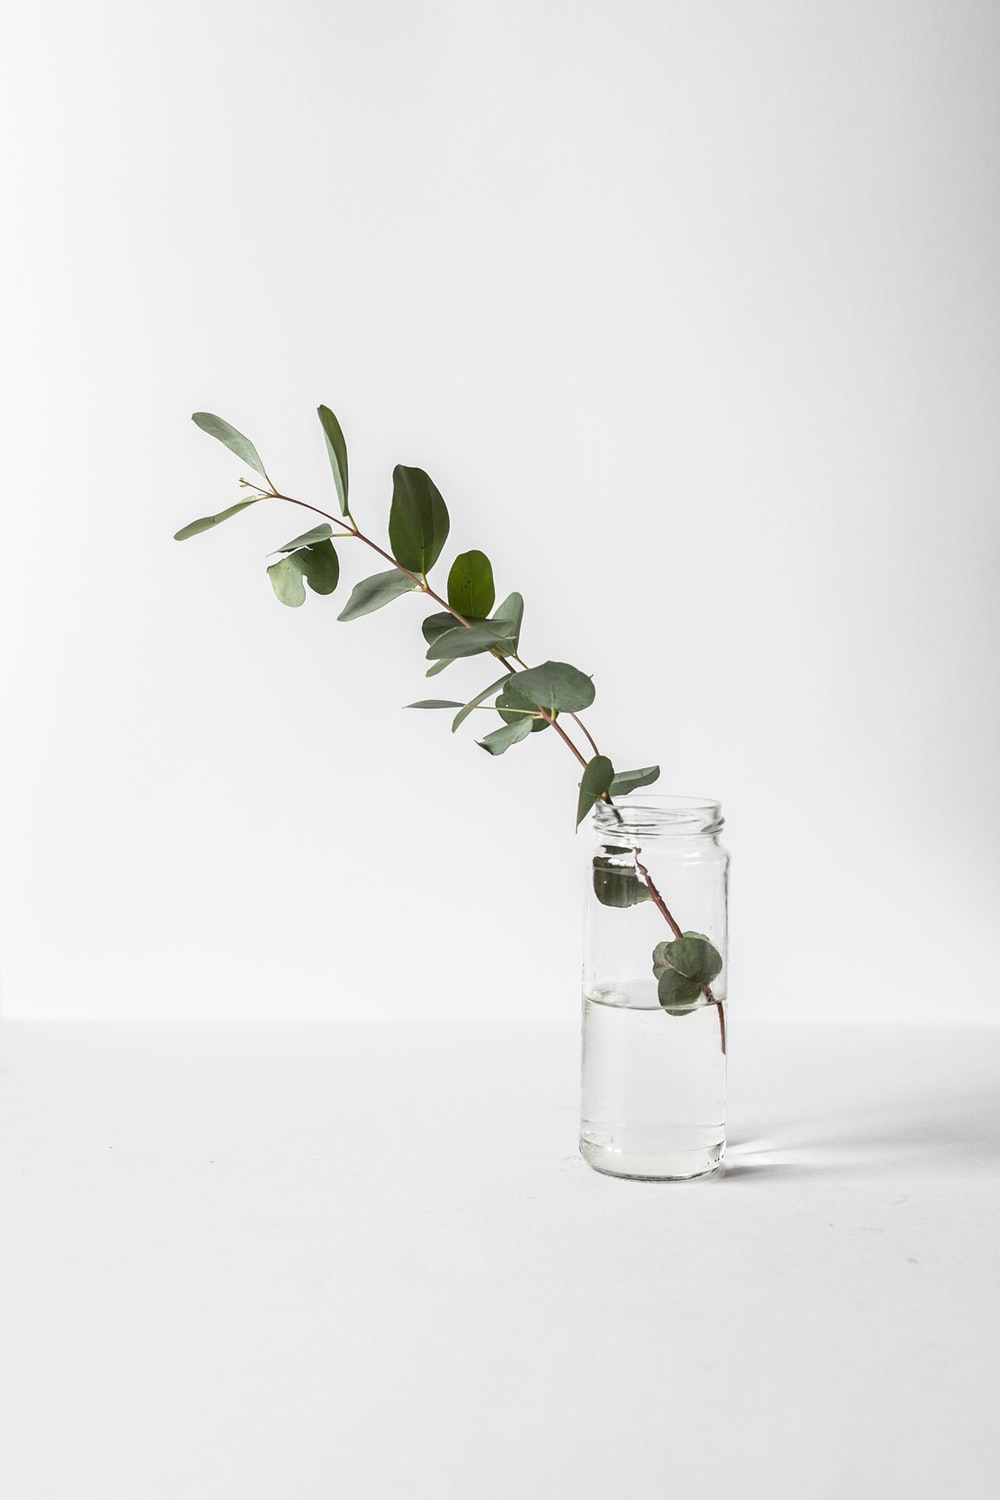 green leafed plant in glass jar